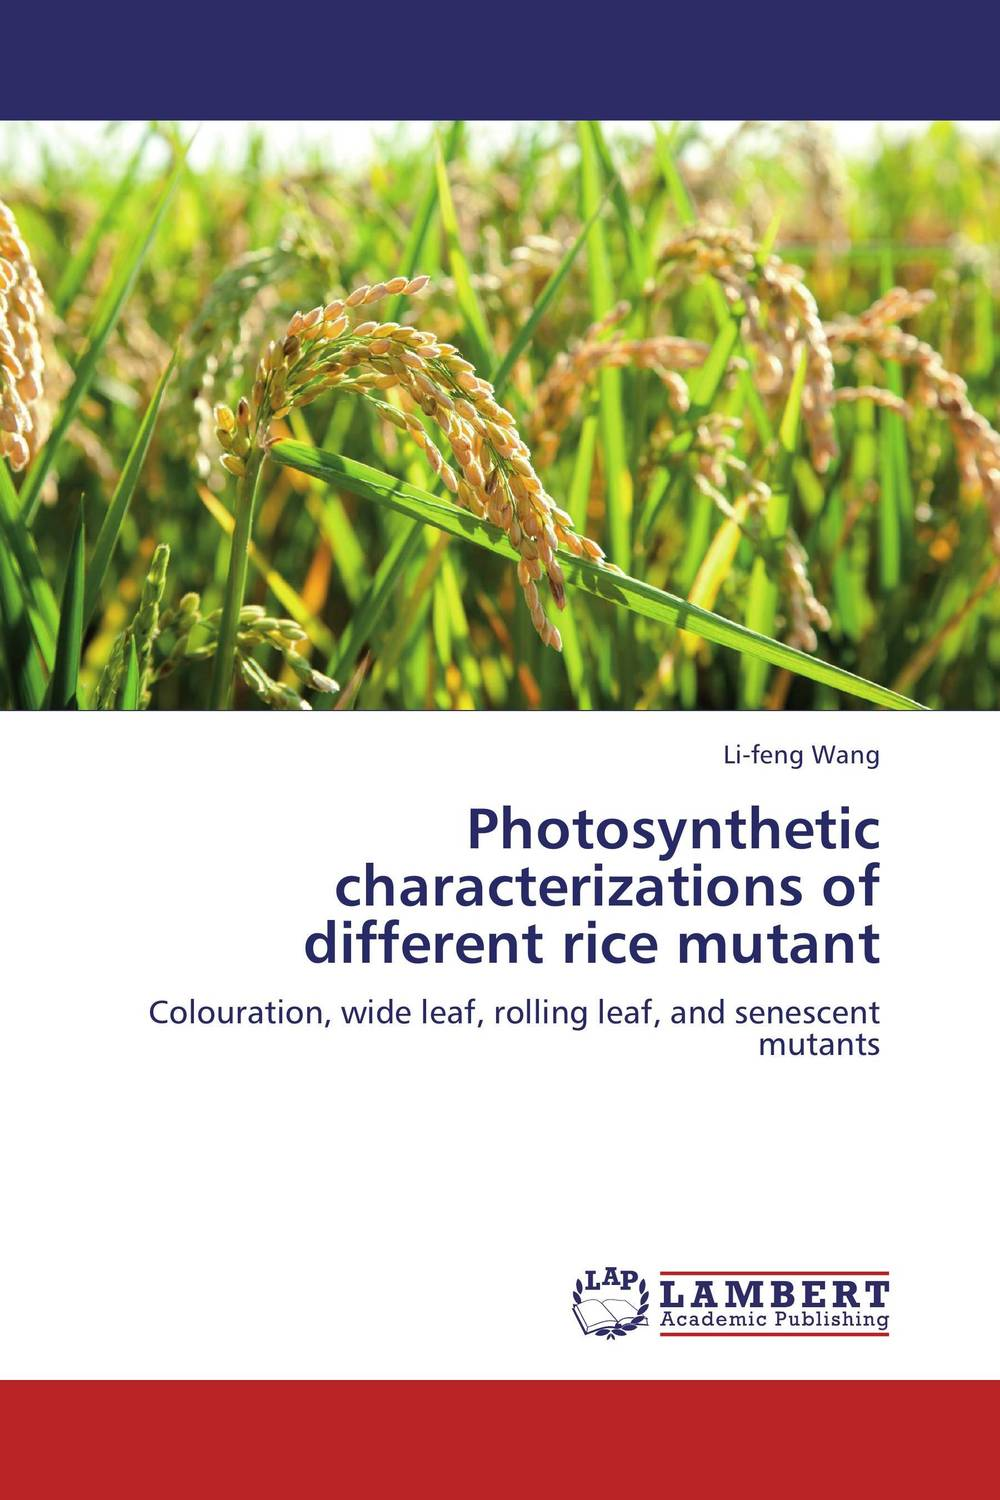 Photosynthetic characterizations of different rice mutant new mutants